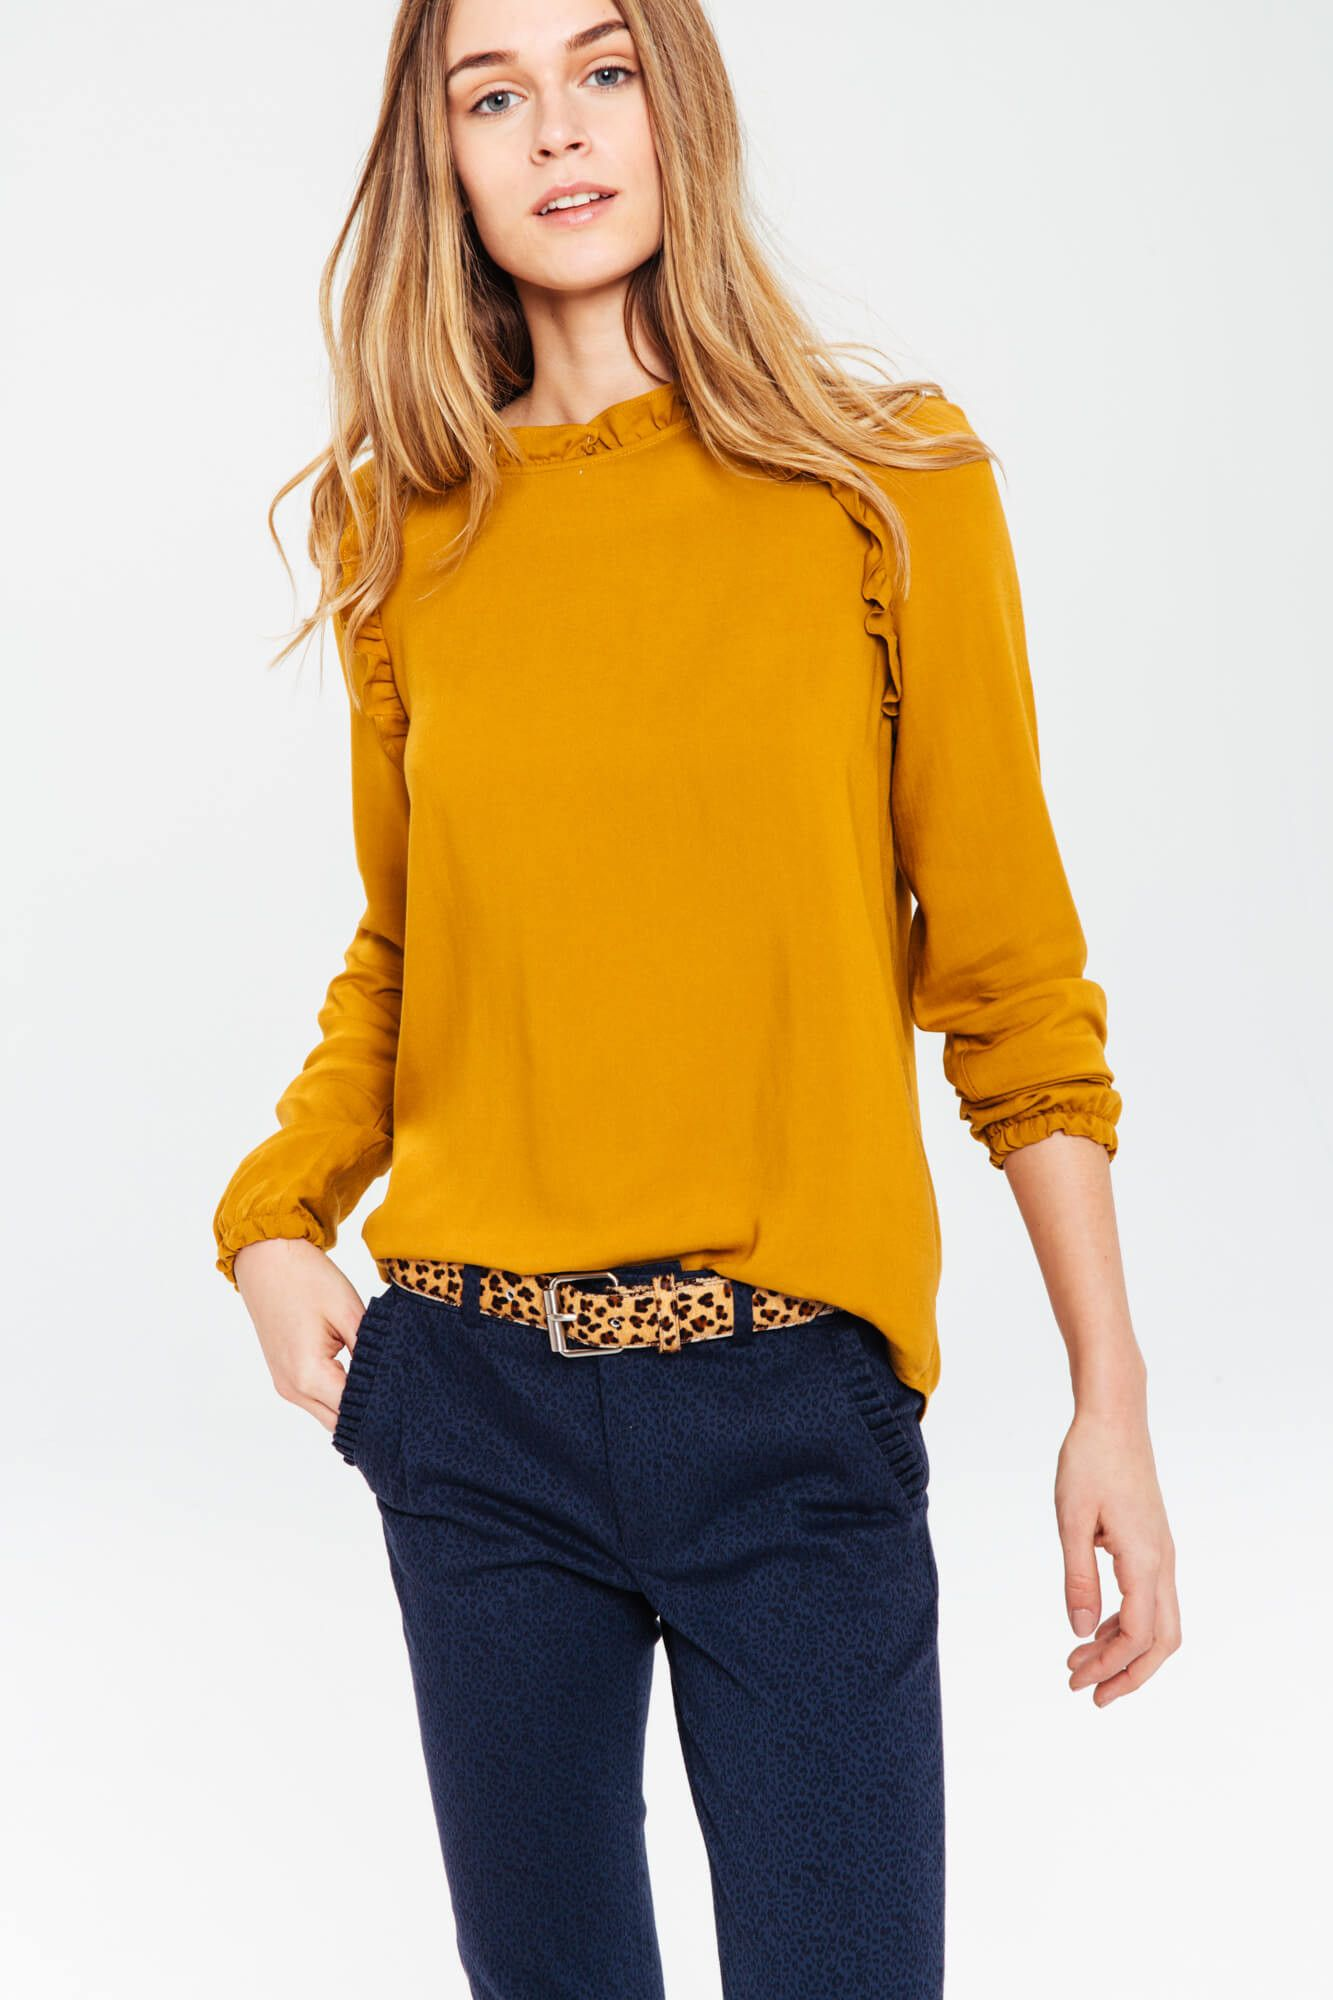 5f38ead12579 Blouse femme moutarde a volant Chemisier Jaune Moutarde